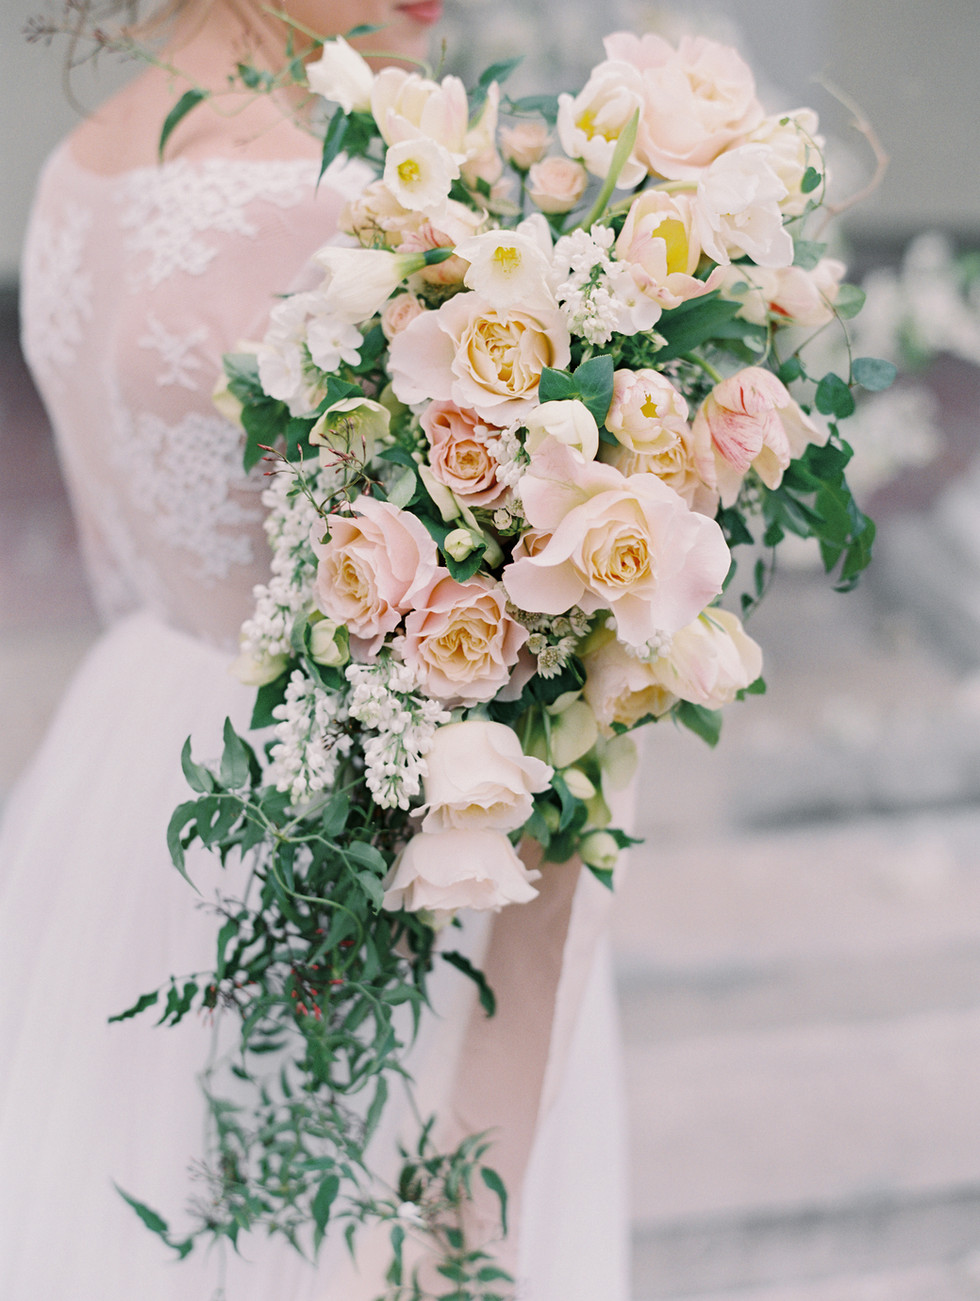 Cascading bridal bouquet in peach, blush and pale yellow. Photo: Gaby Jeter